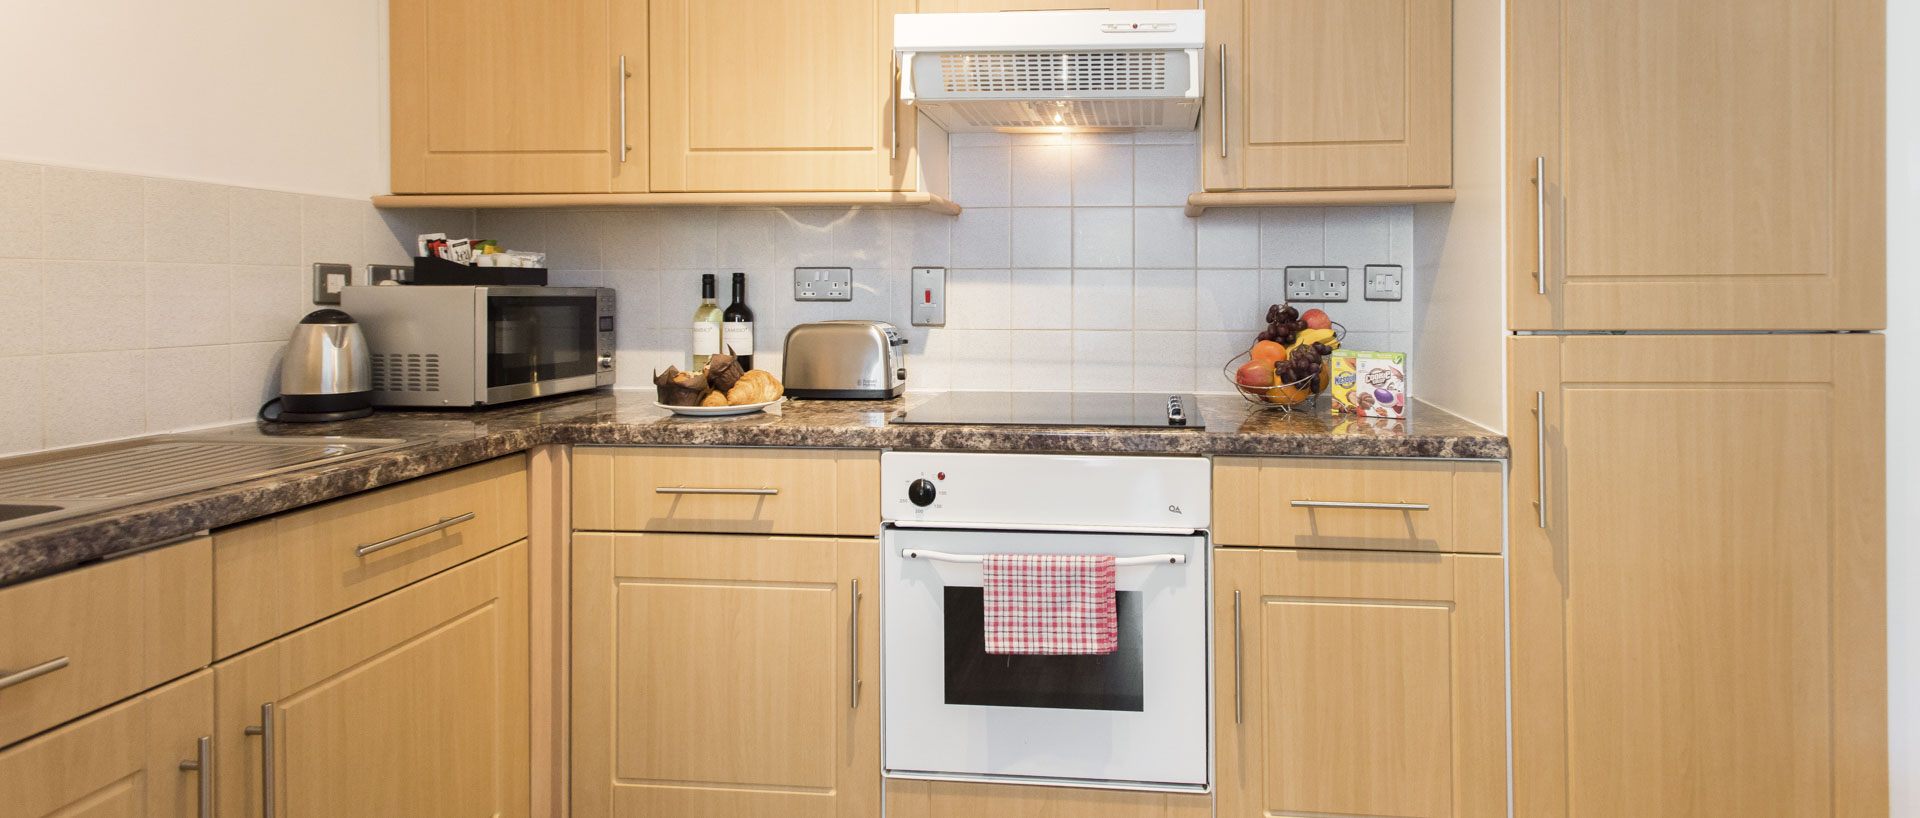 PREMIER SUITES Birmingham fully equipped kitchen